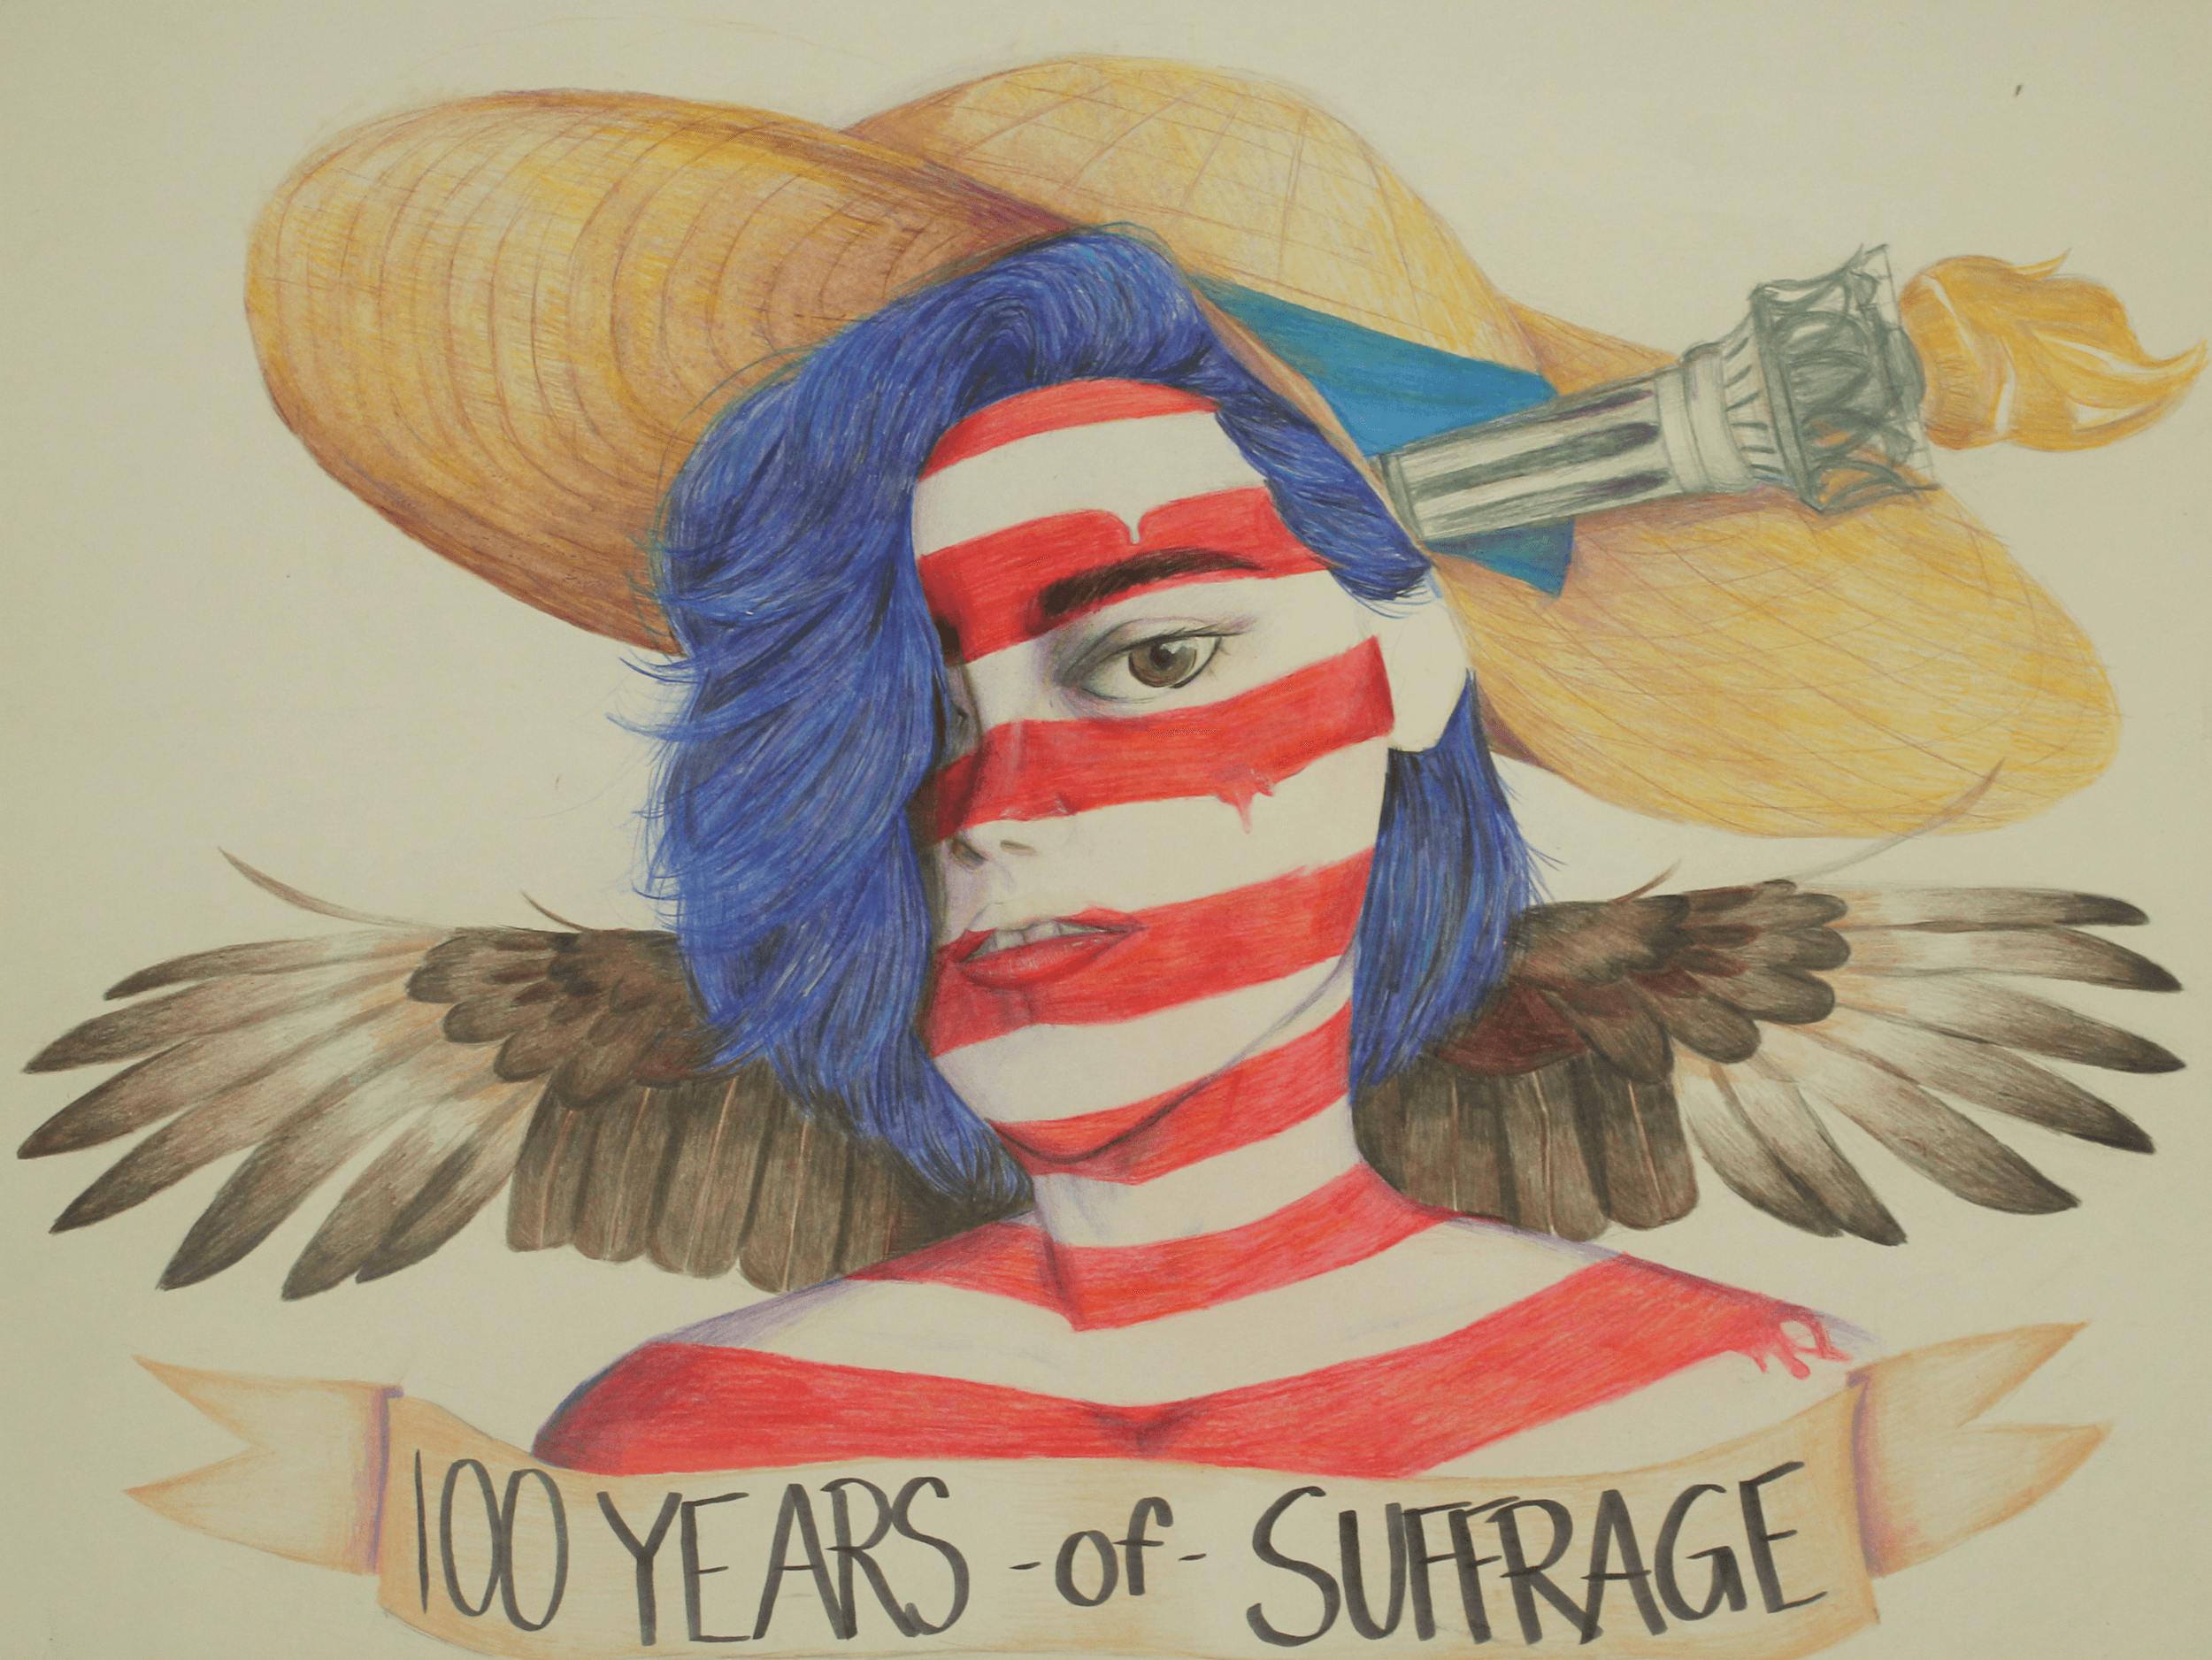 A young woman painted in red and white stripes with a banner that reads 100 years of suffrage